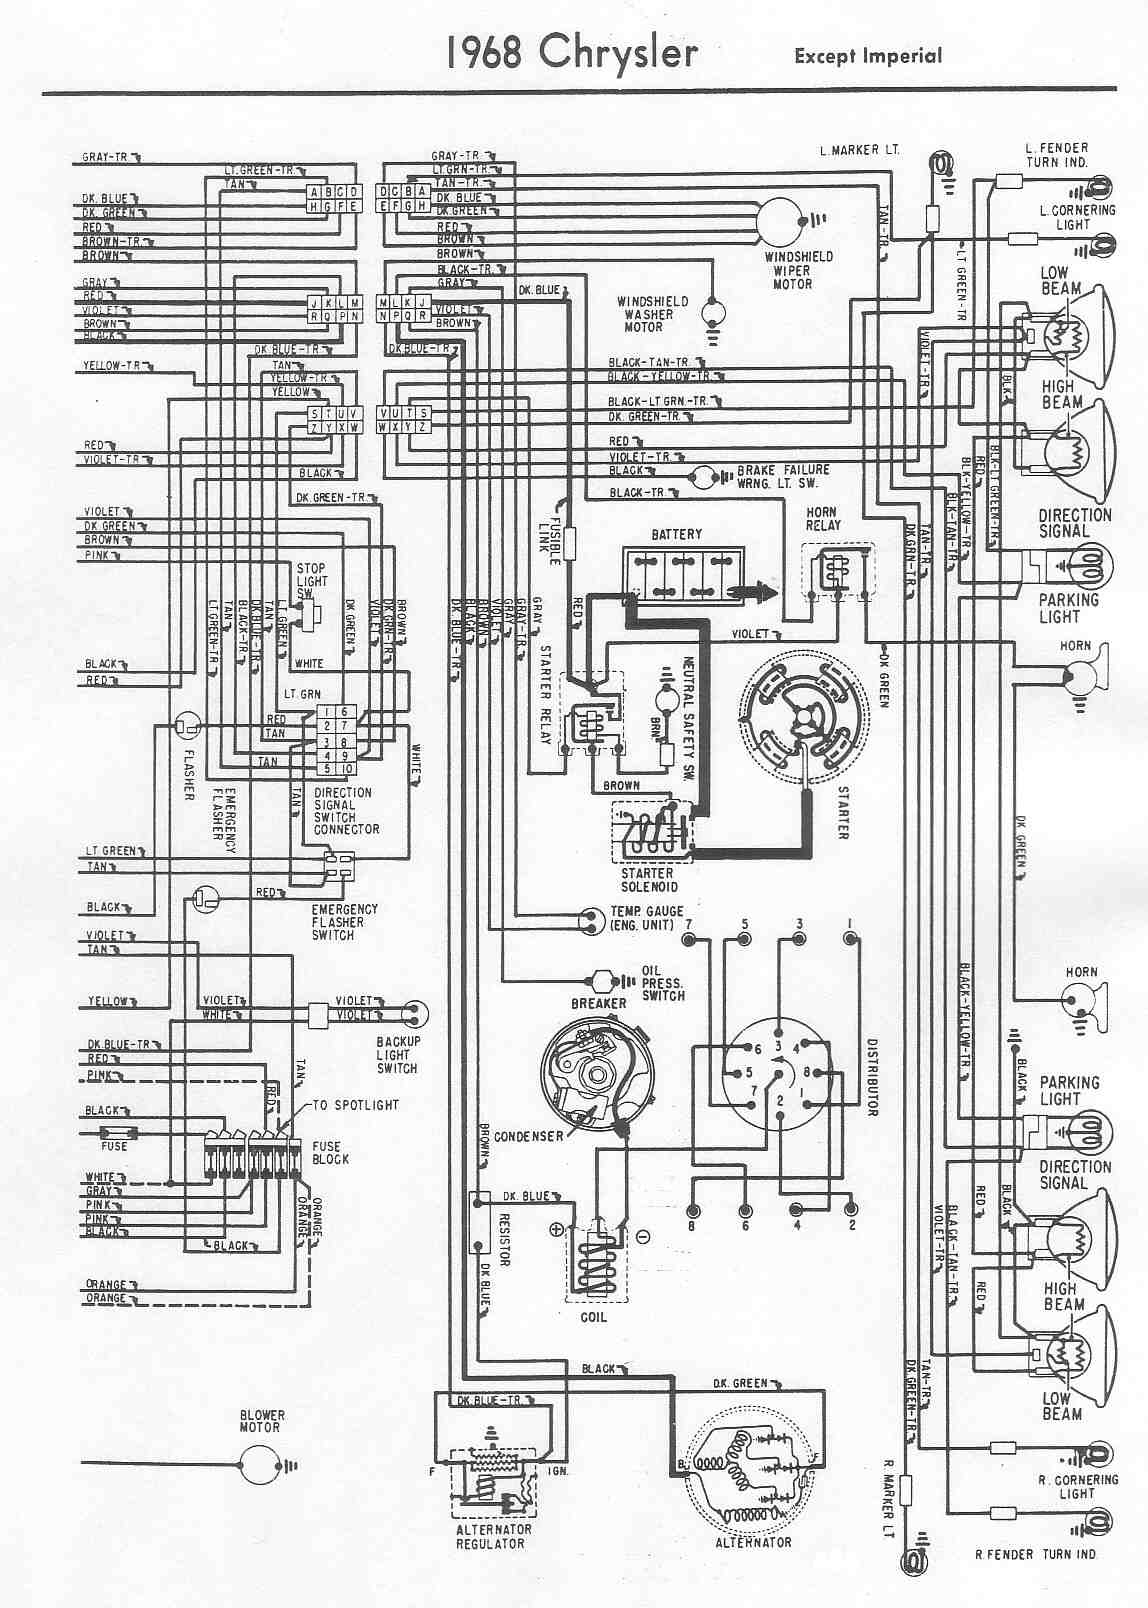 small resolution of 68 dodge neutral safety switch wiring schematic wiring diagram68 dodge neutral safety switch wiring wiring diagram